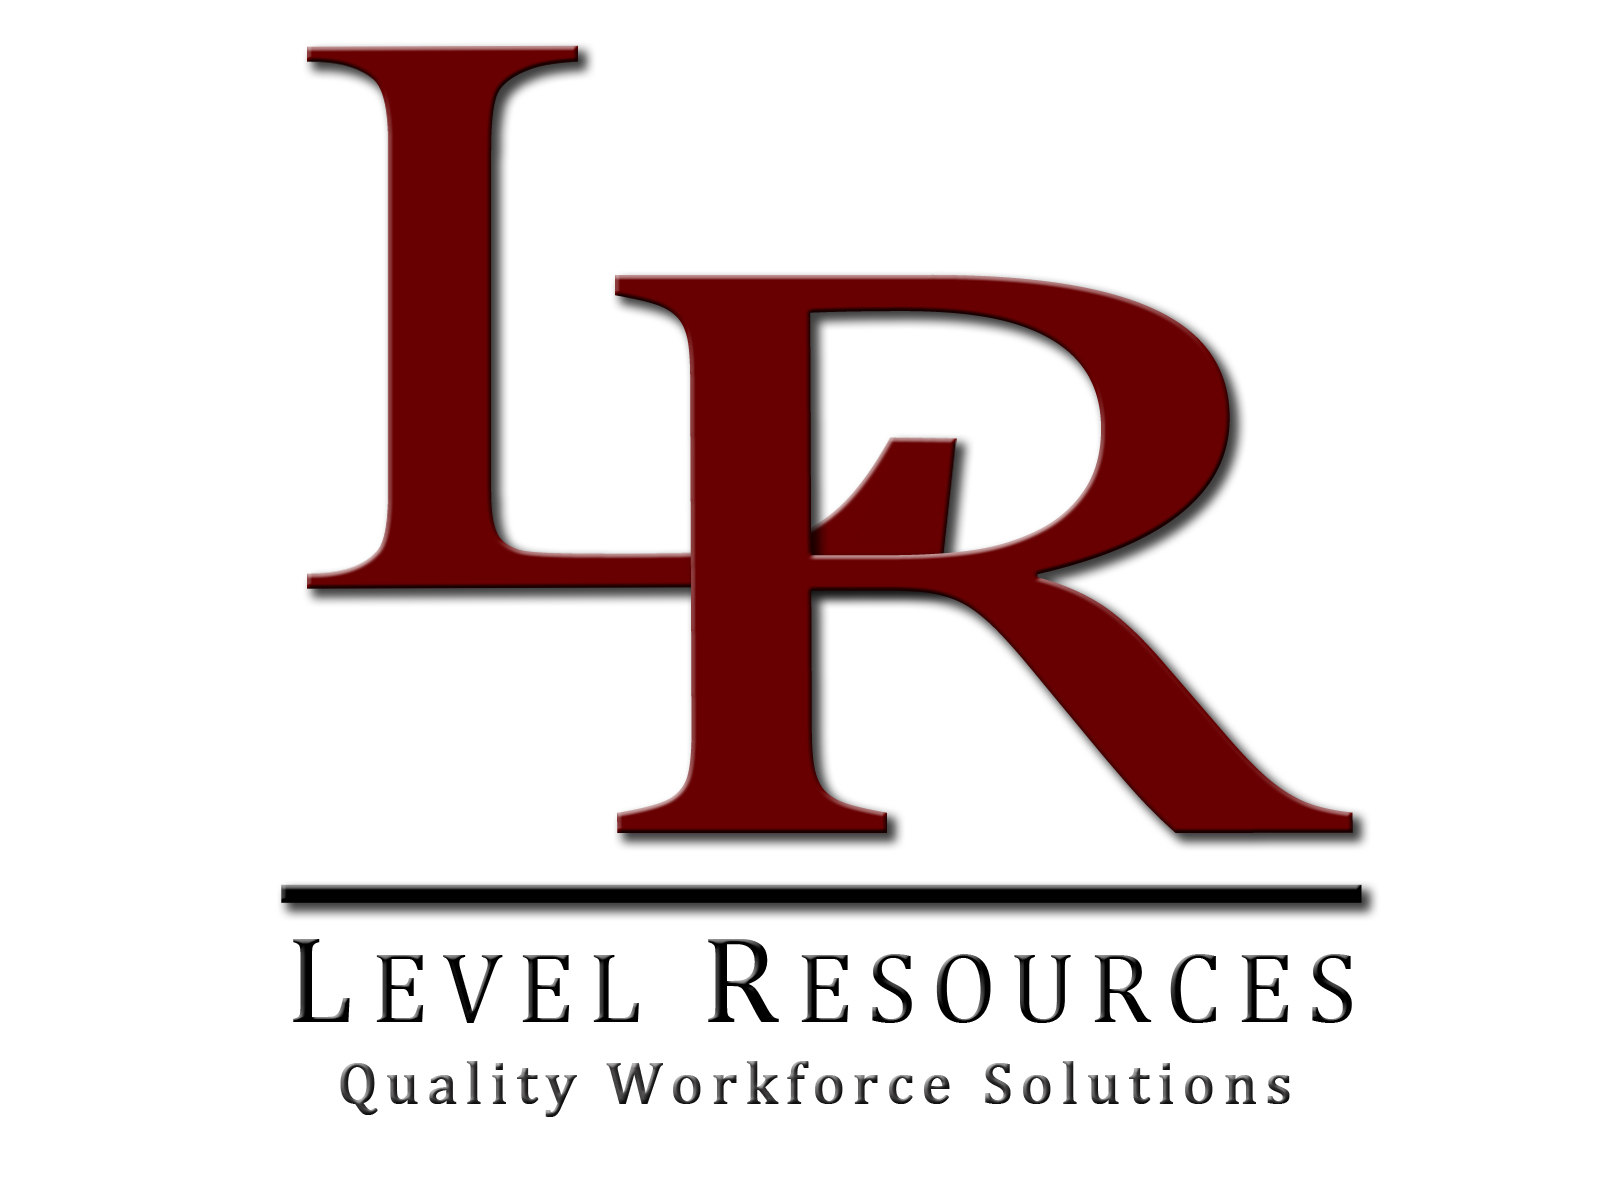 Level Resources